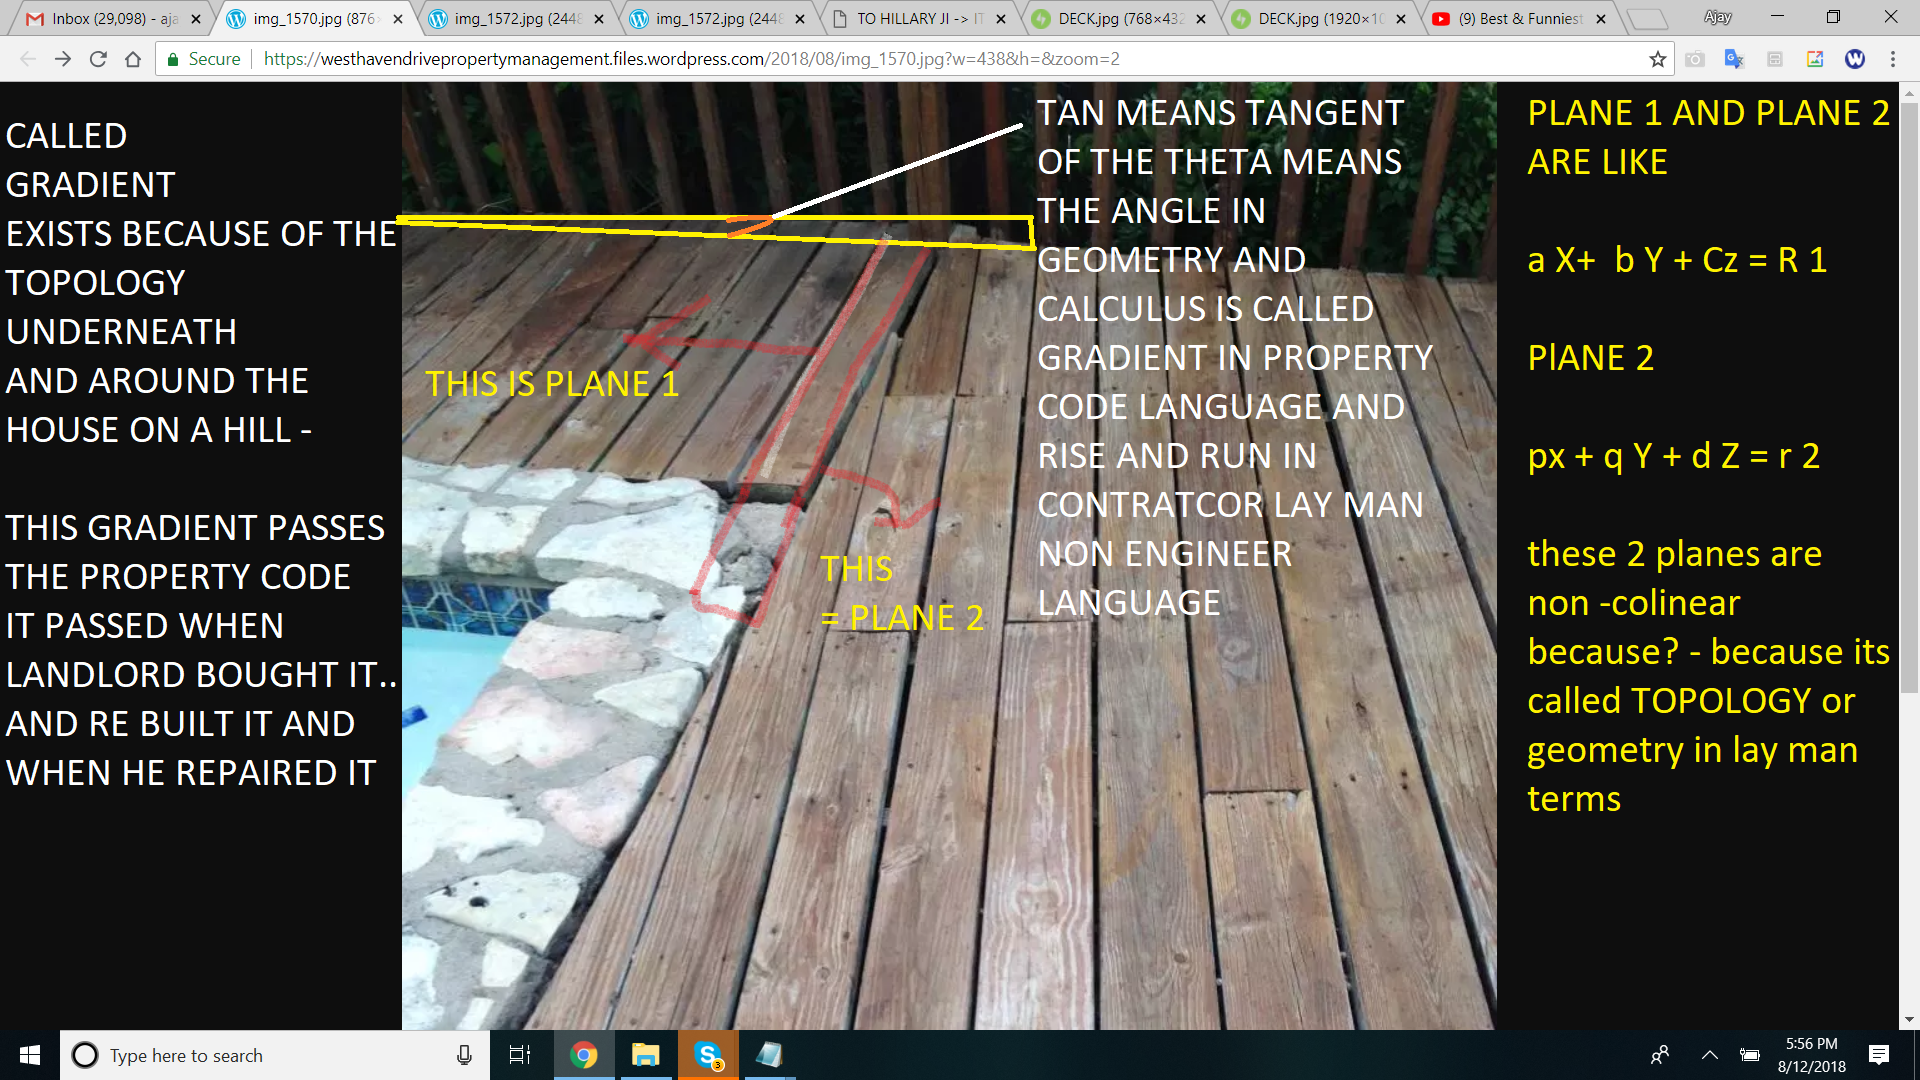 TAN MEANS TNGENT OF THE THETA MEANS THE ANGLE IN GEOMETRY AND CALCULUS IS CALLED GRADIENT IN PROPERTY CODE LANGUAGE AND RISE AND RUN IN CONTRATCOR LAY MAN NON ENGINEER LANGUAGE